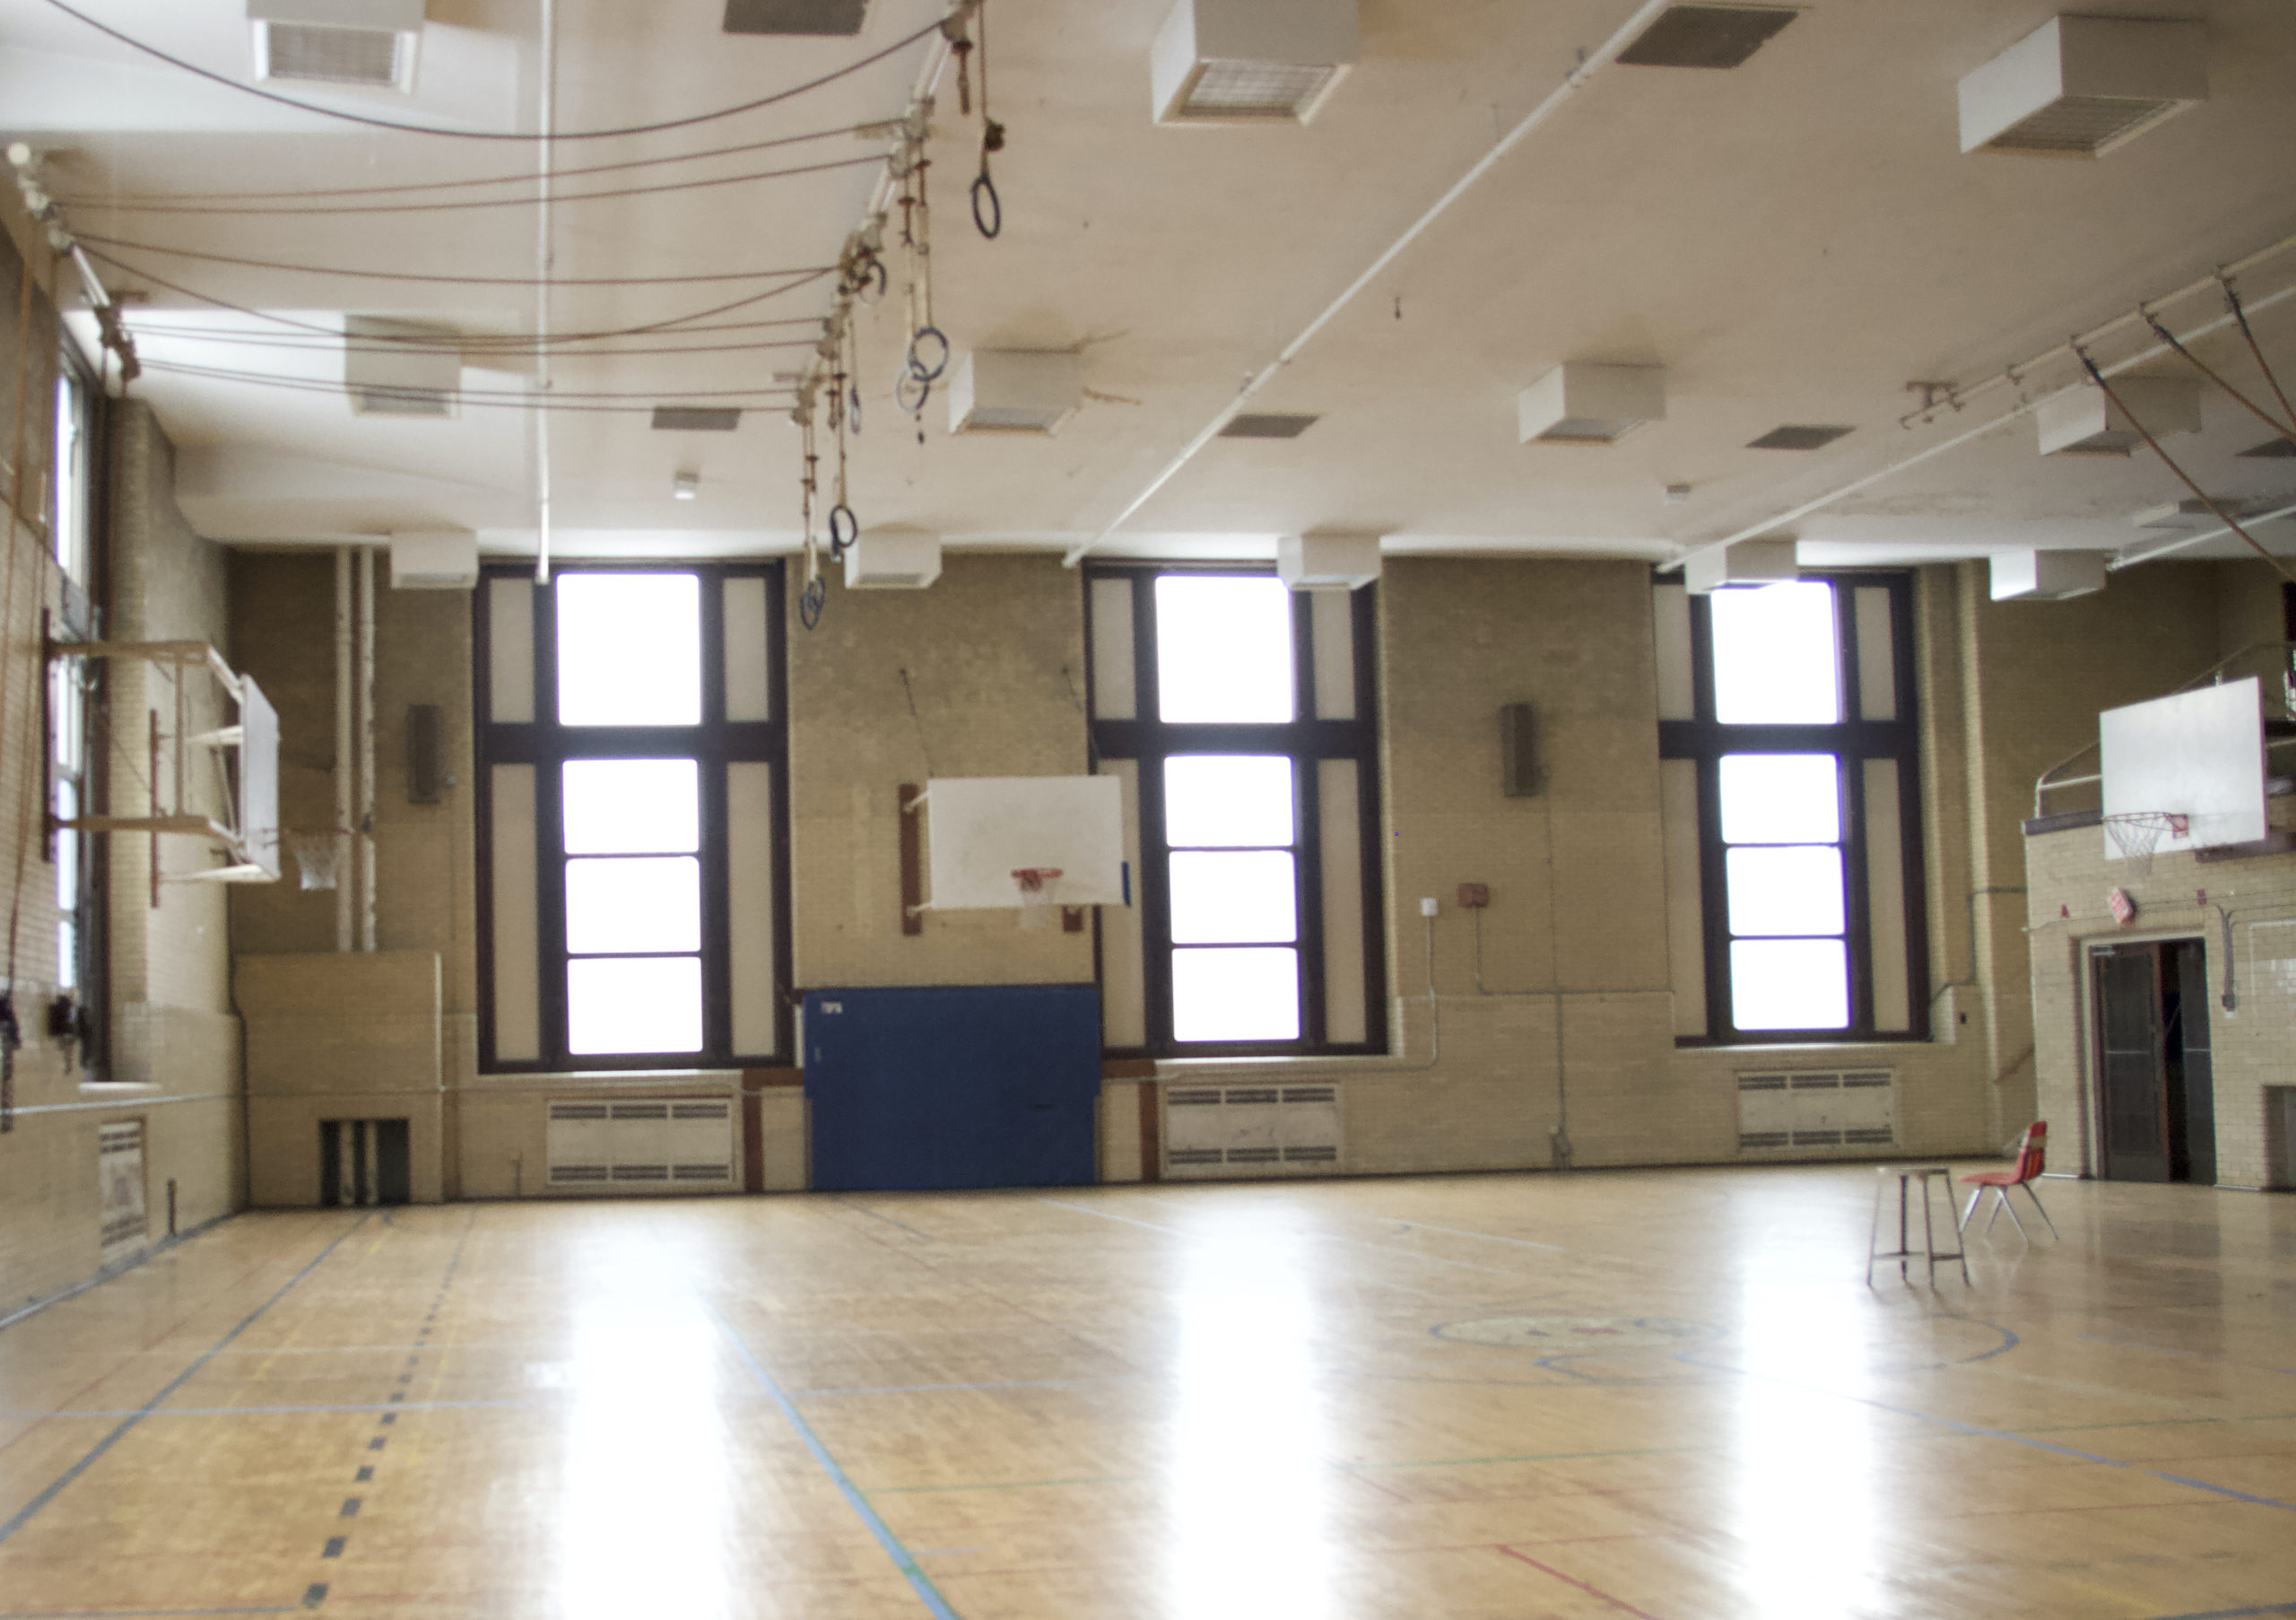 Bare image of the gymnasium in the Bok Building.